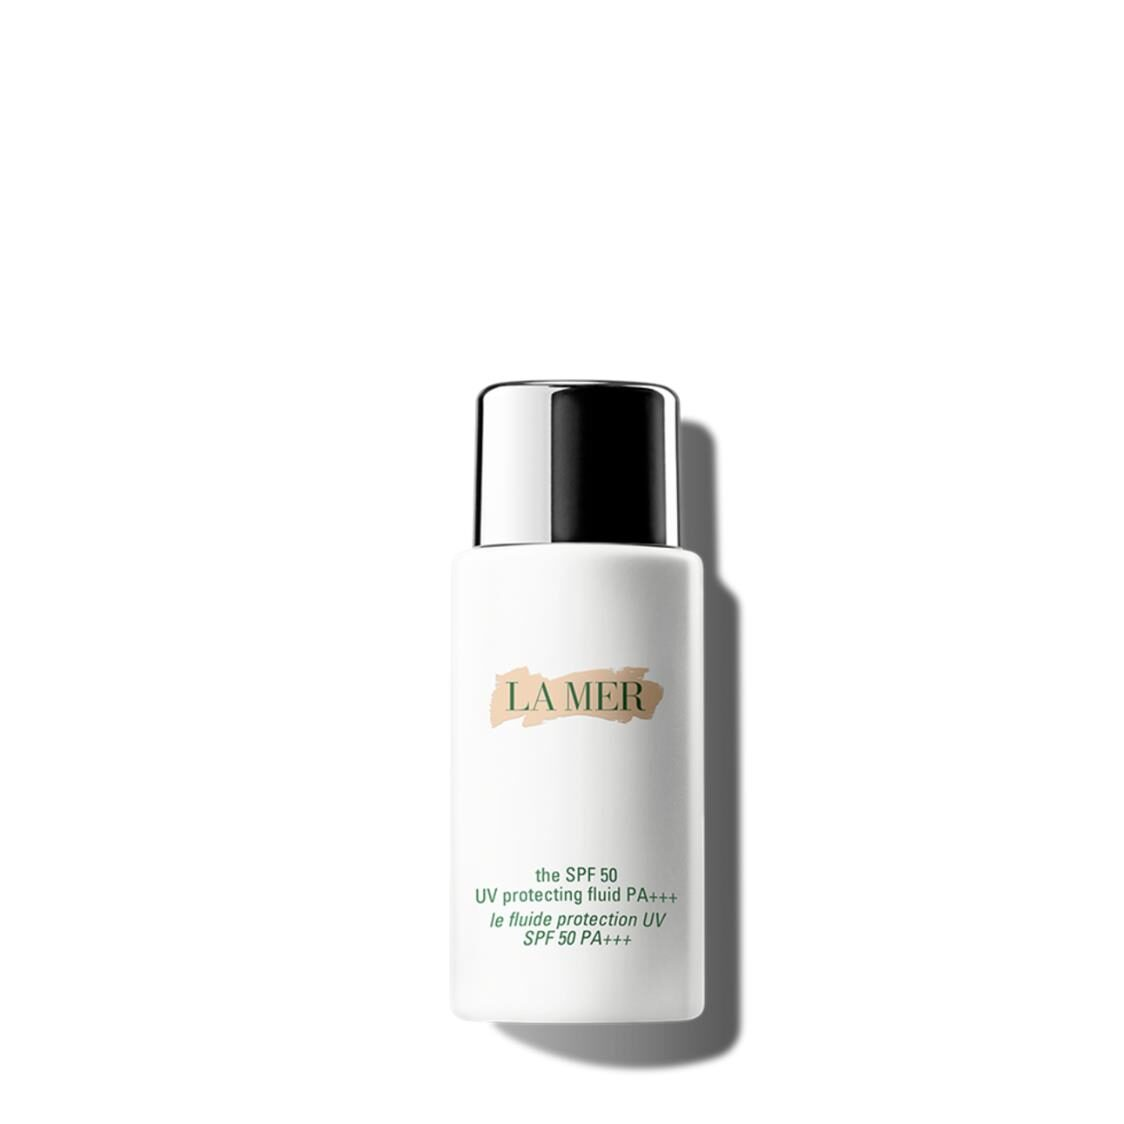 La Mer The SPF50 UV Protecting Fluid 50ml